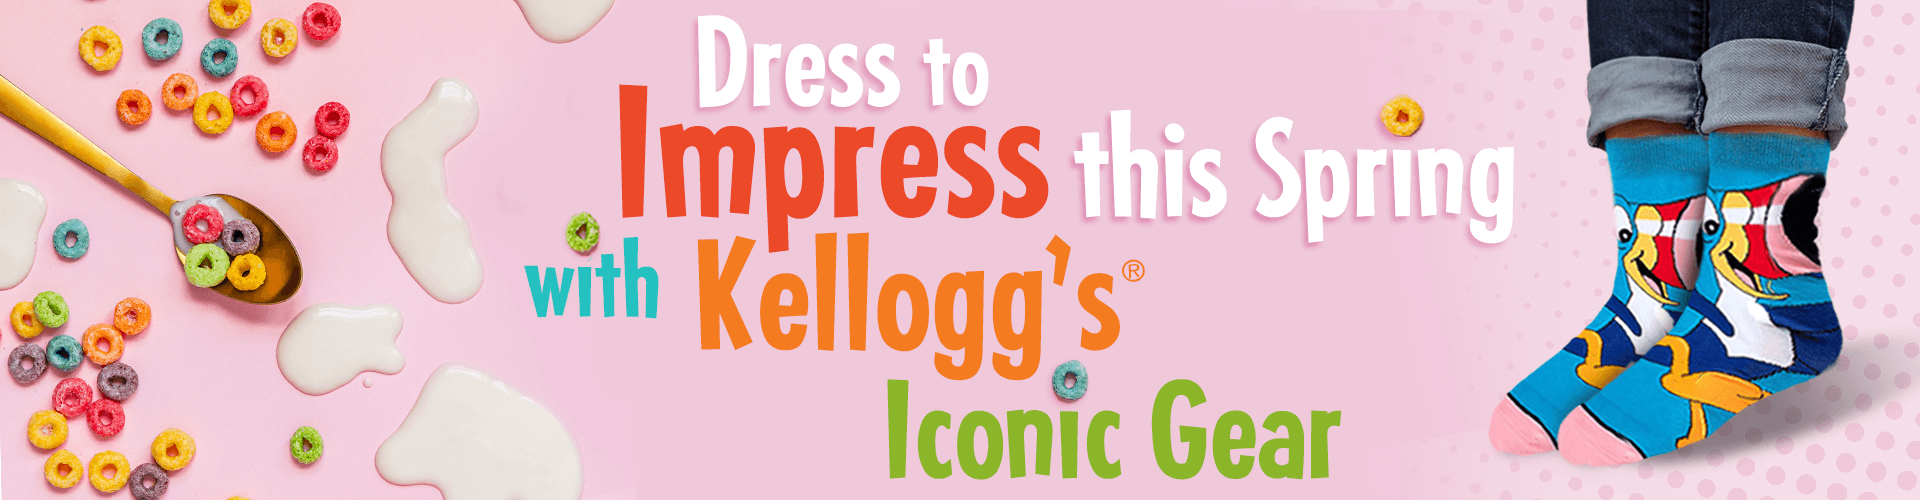 Dress to Impress this Spring with Kellogg's Iconic Gear